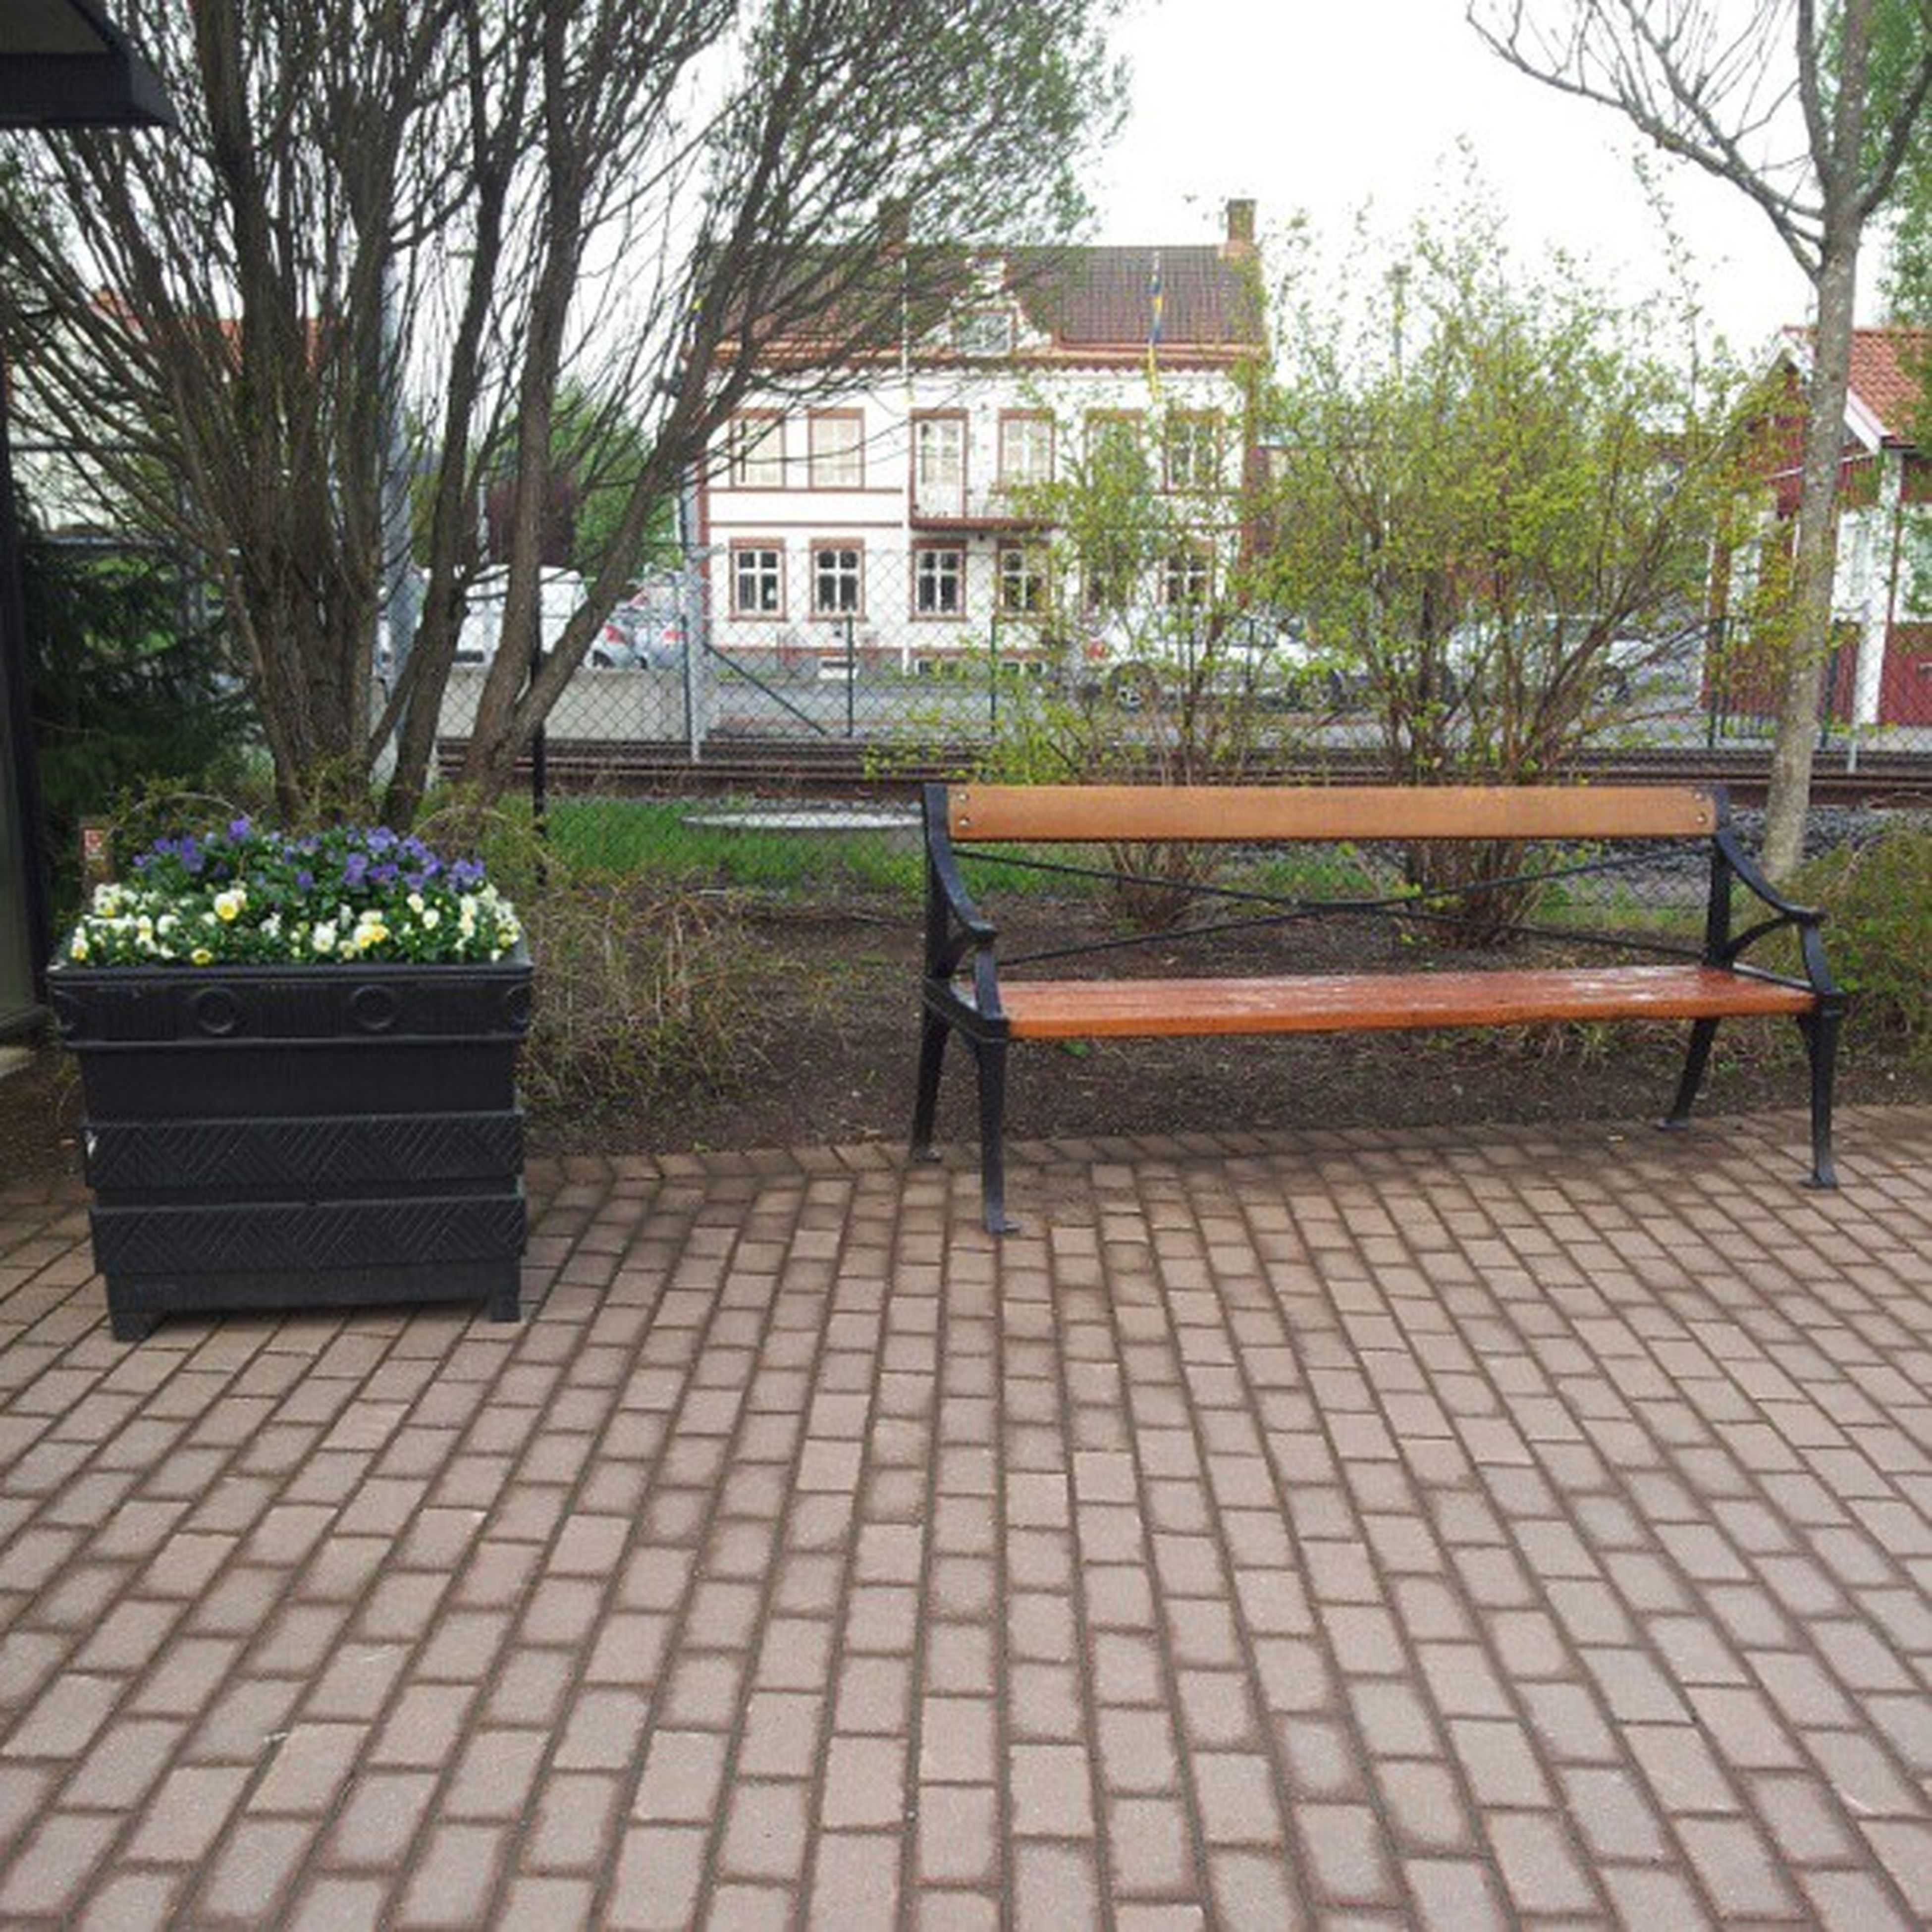 tree, building exterior, built structure, architecture, chair, growth, bench, absence, plant, empty, house, potted plant, park - man made space, table, lawn, seat, front or back yard, day, sunlight, city